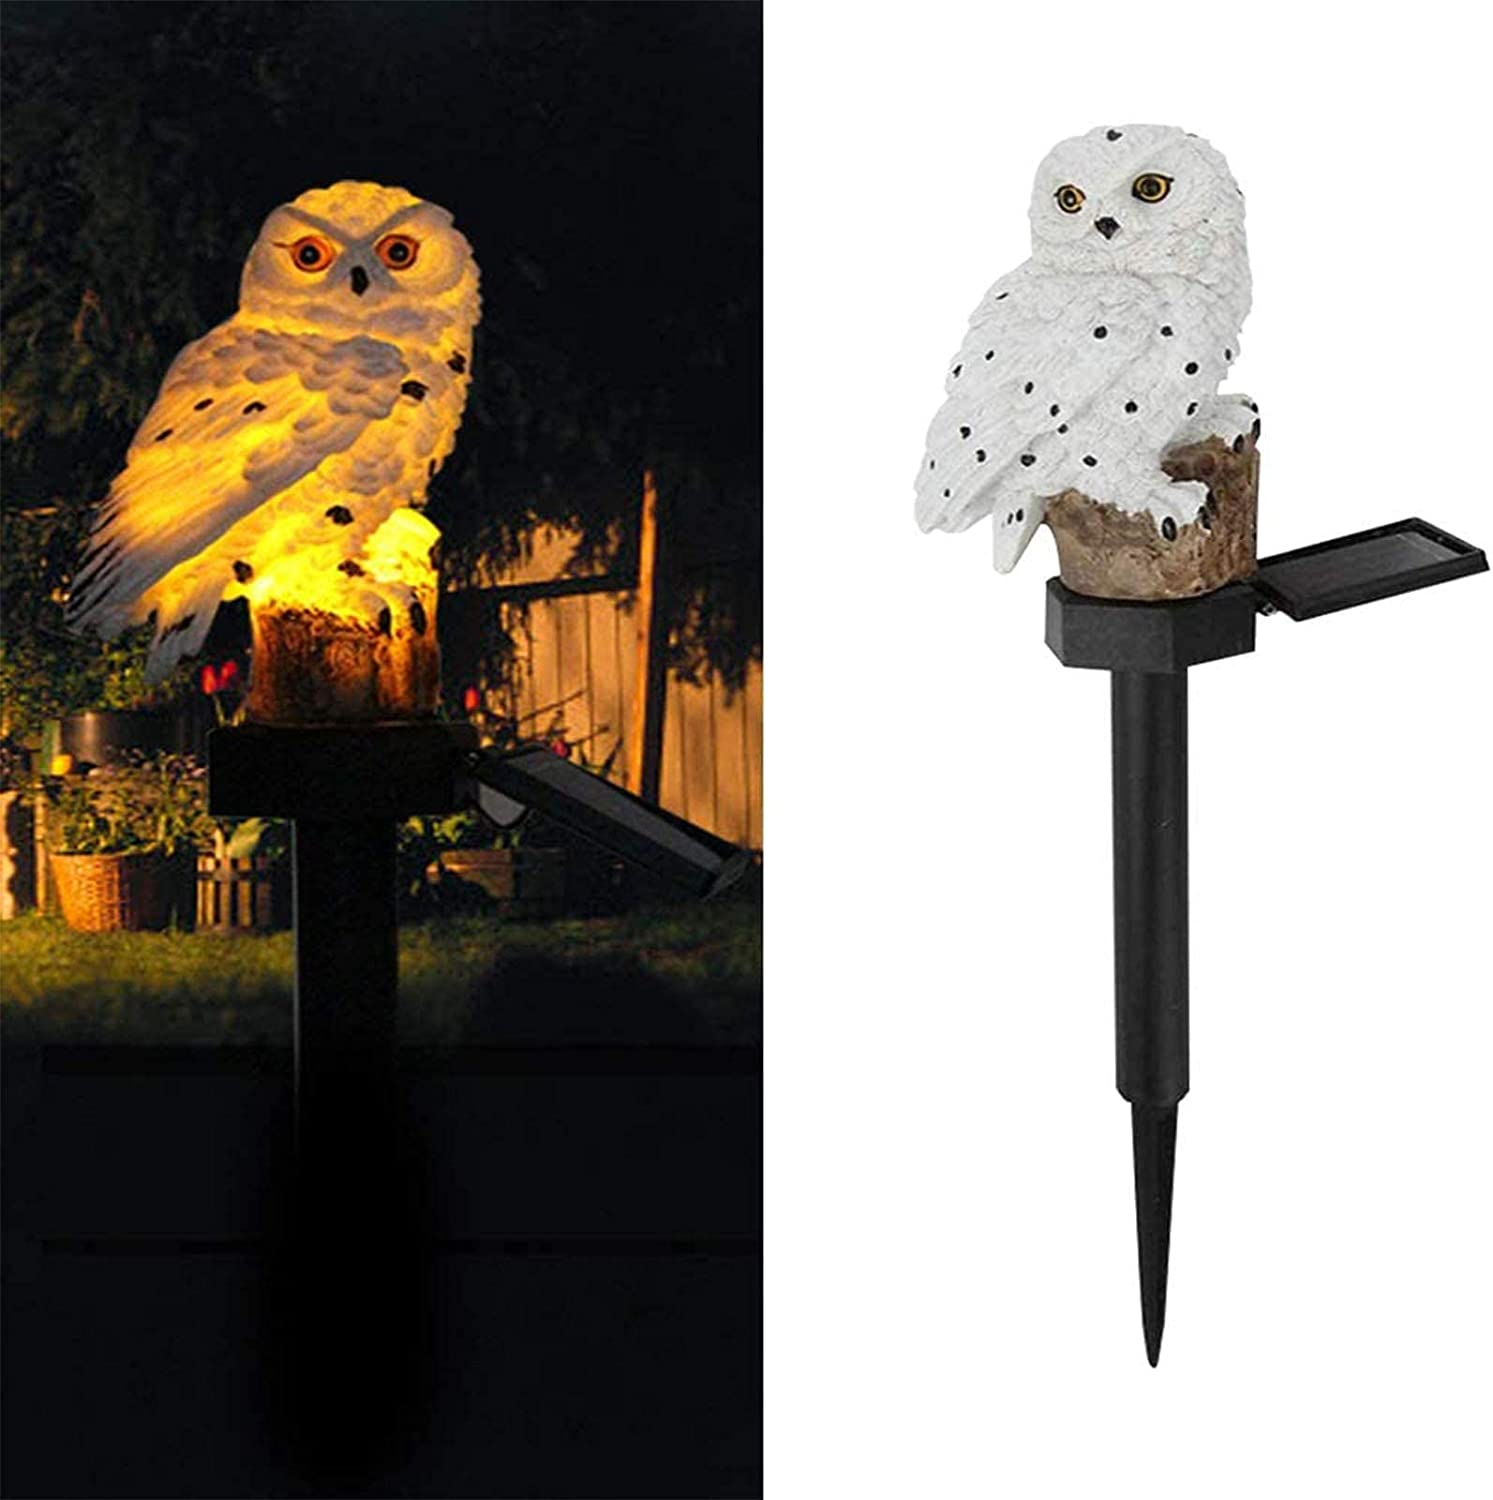 Aongch Owl Solar LED Lights, Garden Solar Lights Outdoor Decorative Garden Waterproof Decorative with Stake for Outdoor Yard Pathway Outside Patio Lawn Decor Scare Birds Away